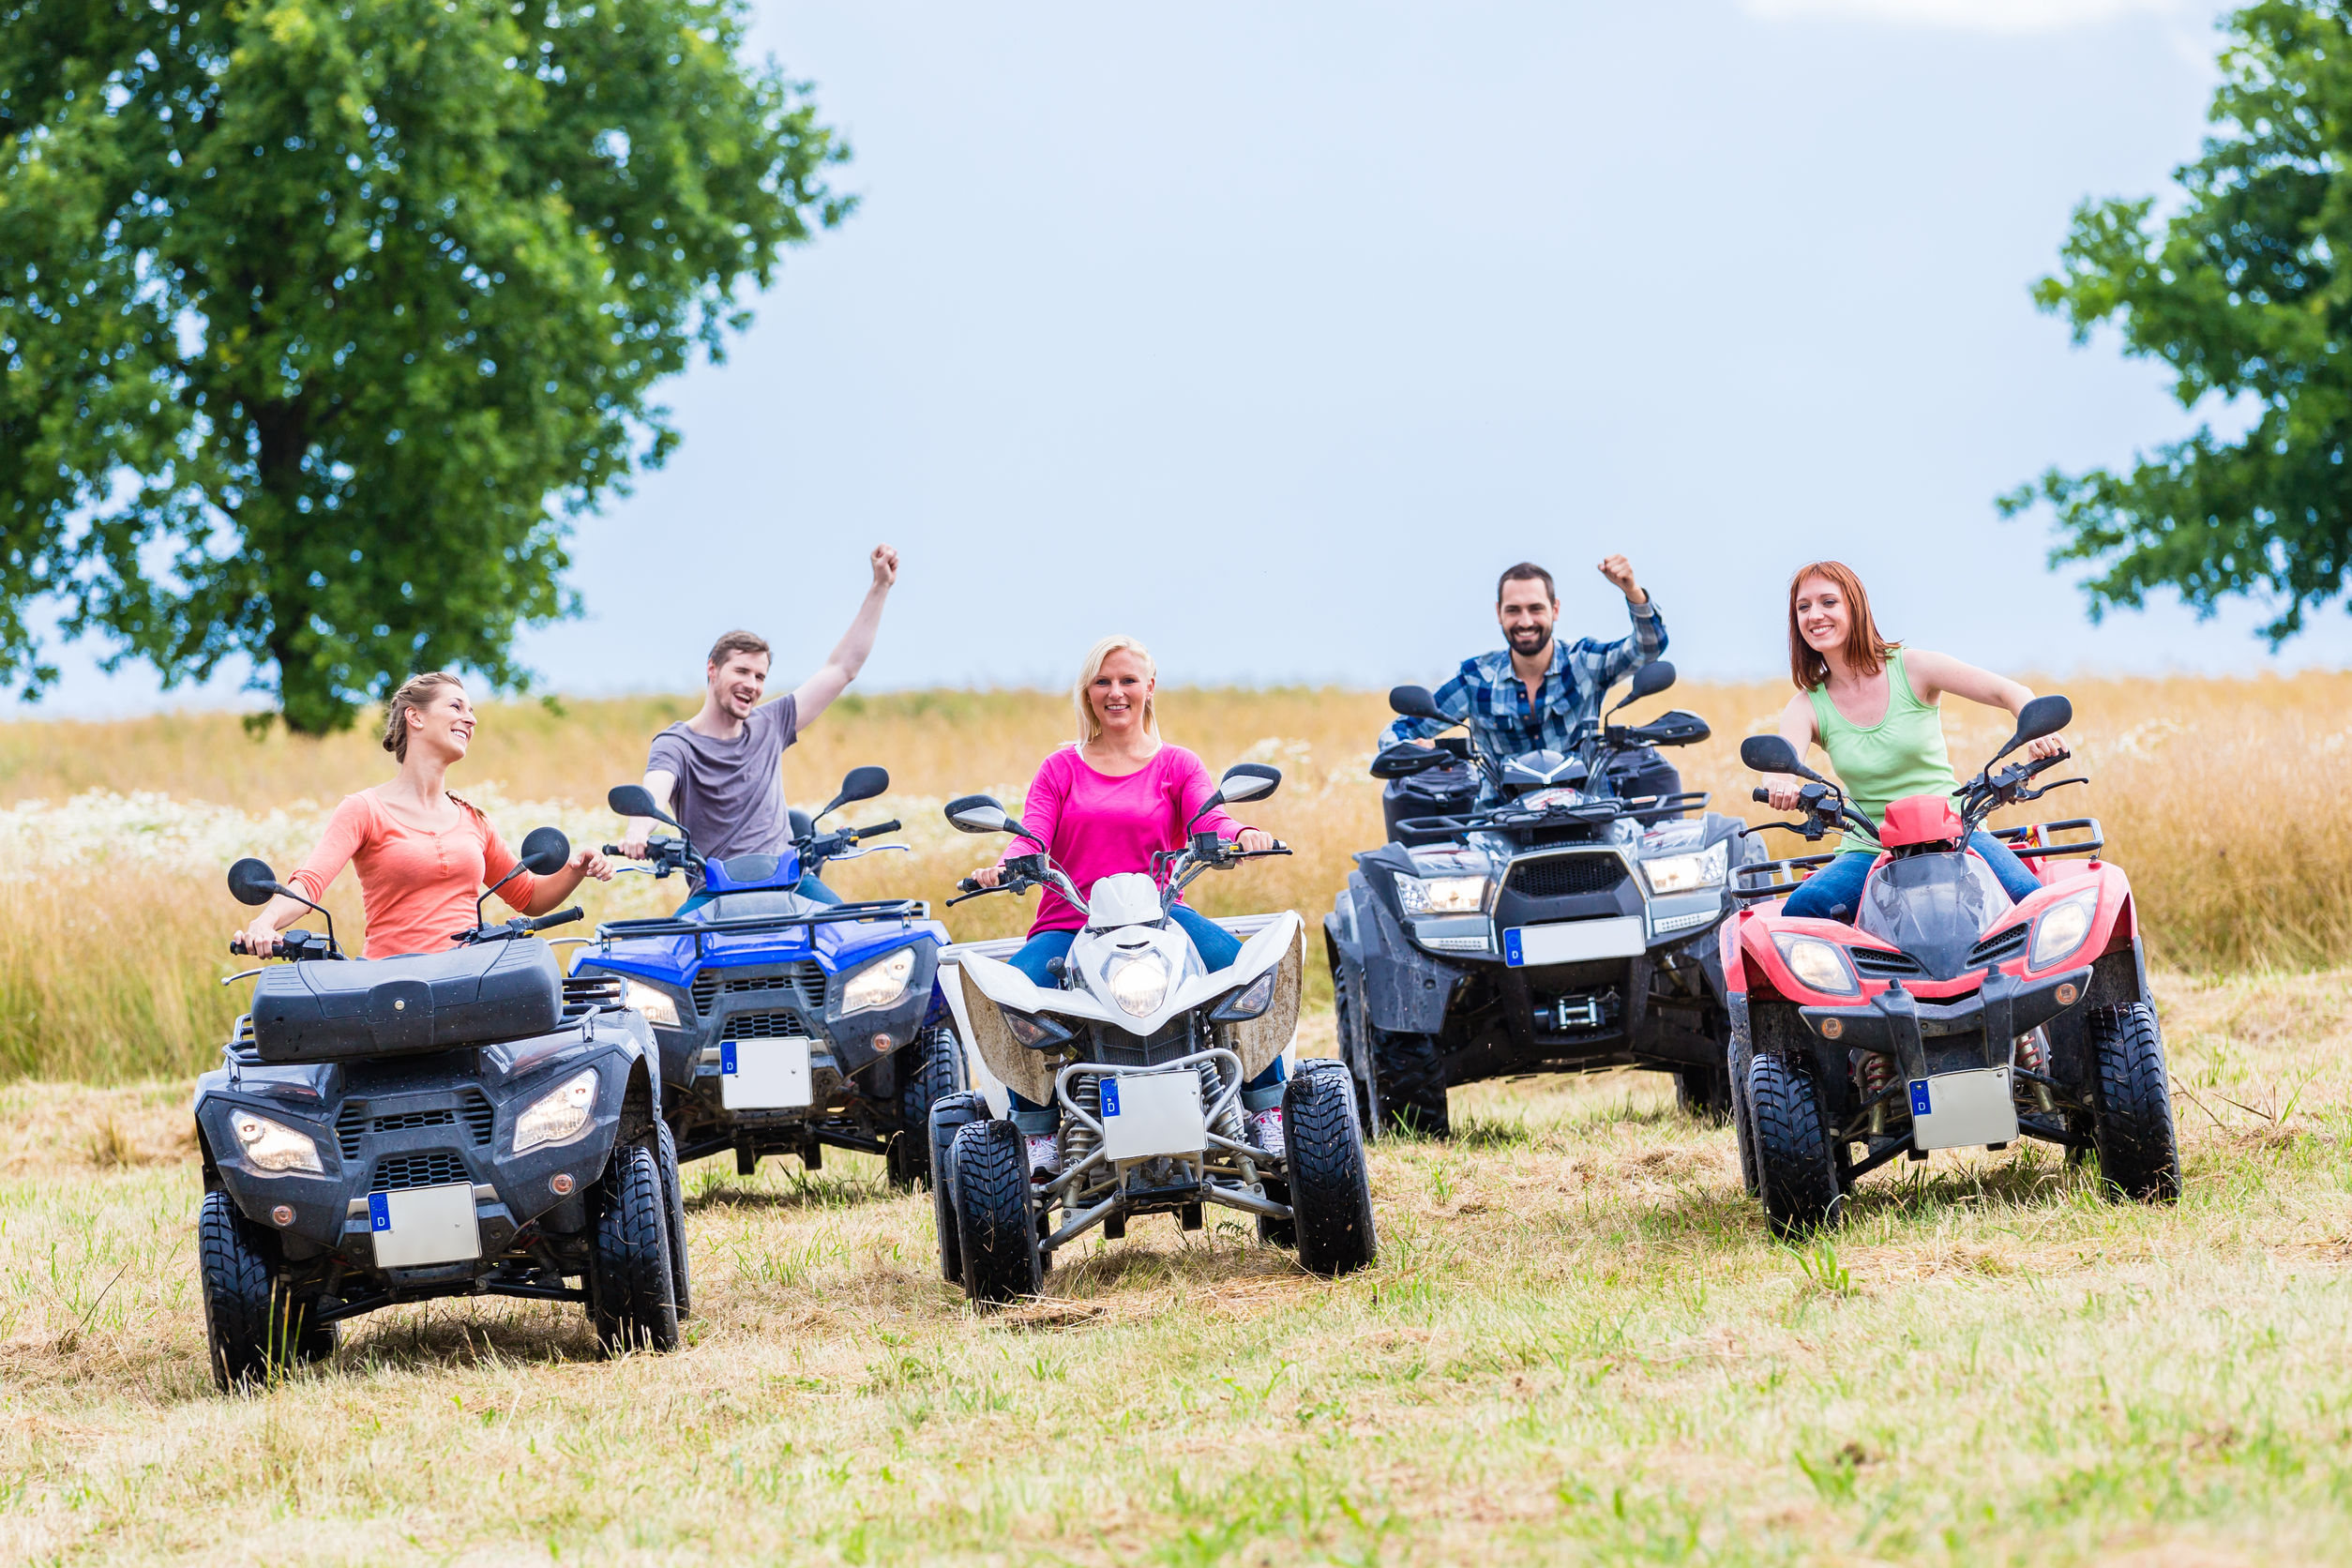 Wauwatosa ATV Insurance